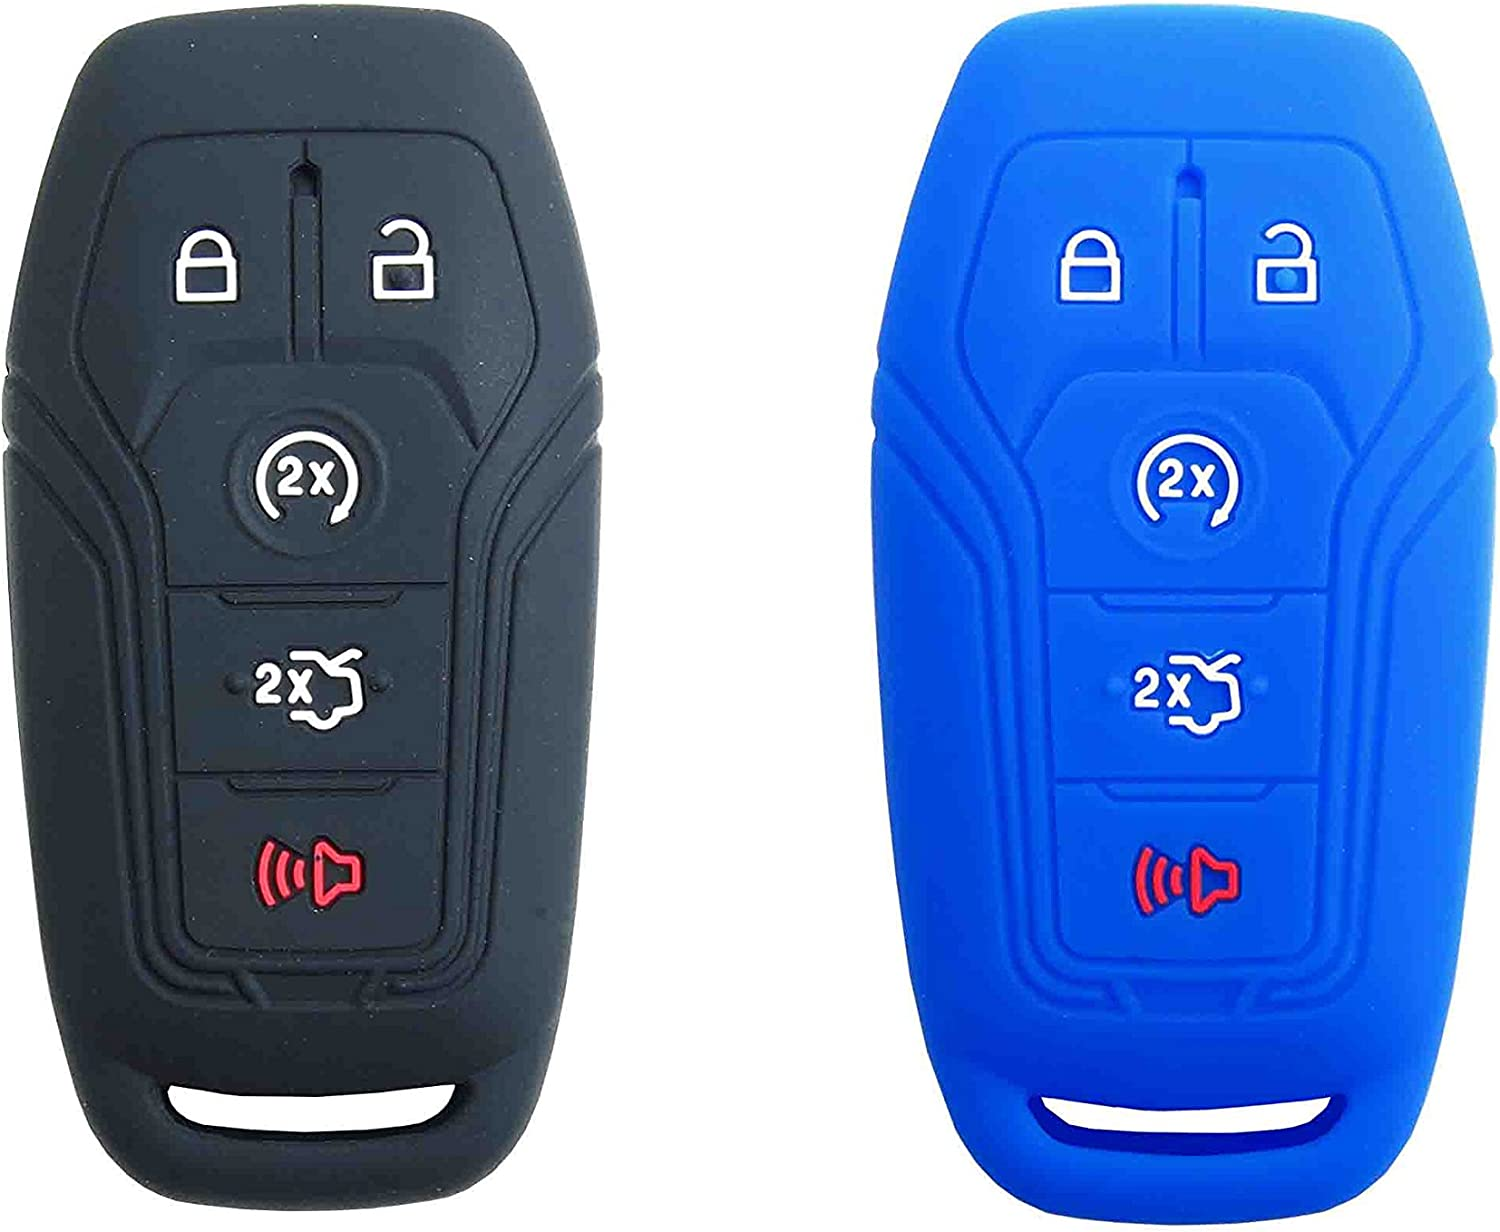 Black+Blue 2Pcs Silicone Key Fob Cover Case Skin Protector for Ford F-150 F150 Fusion Explorer Edge Lincoln MKZ Mustang MKC